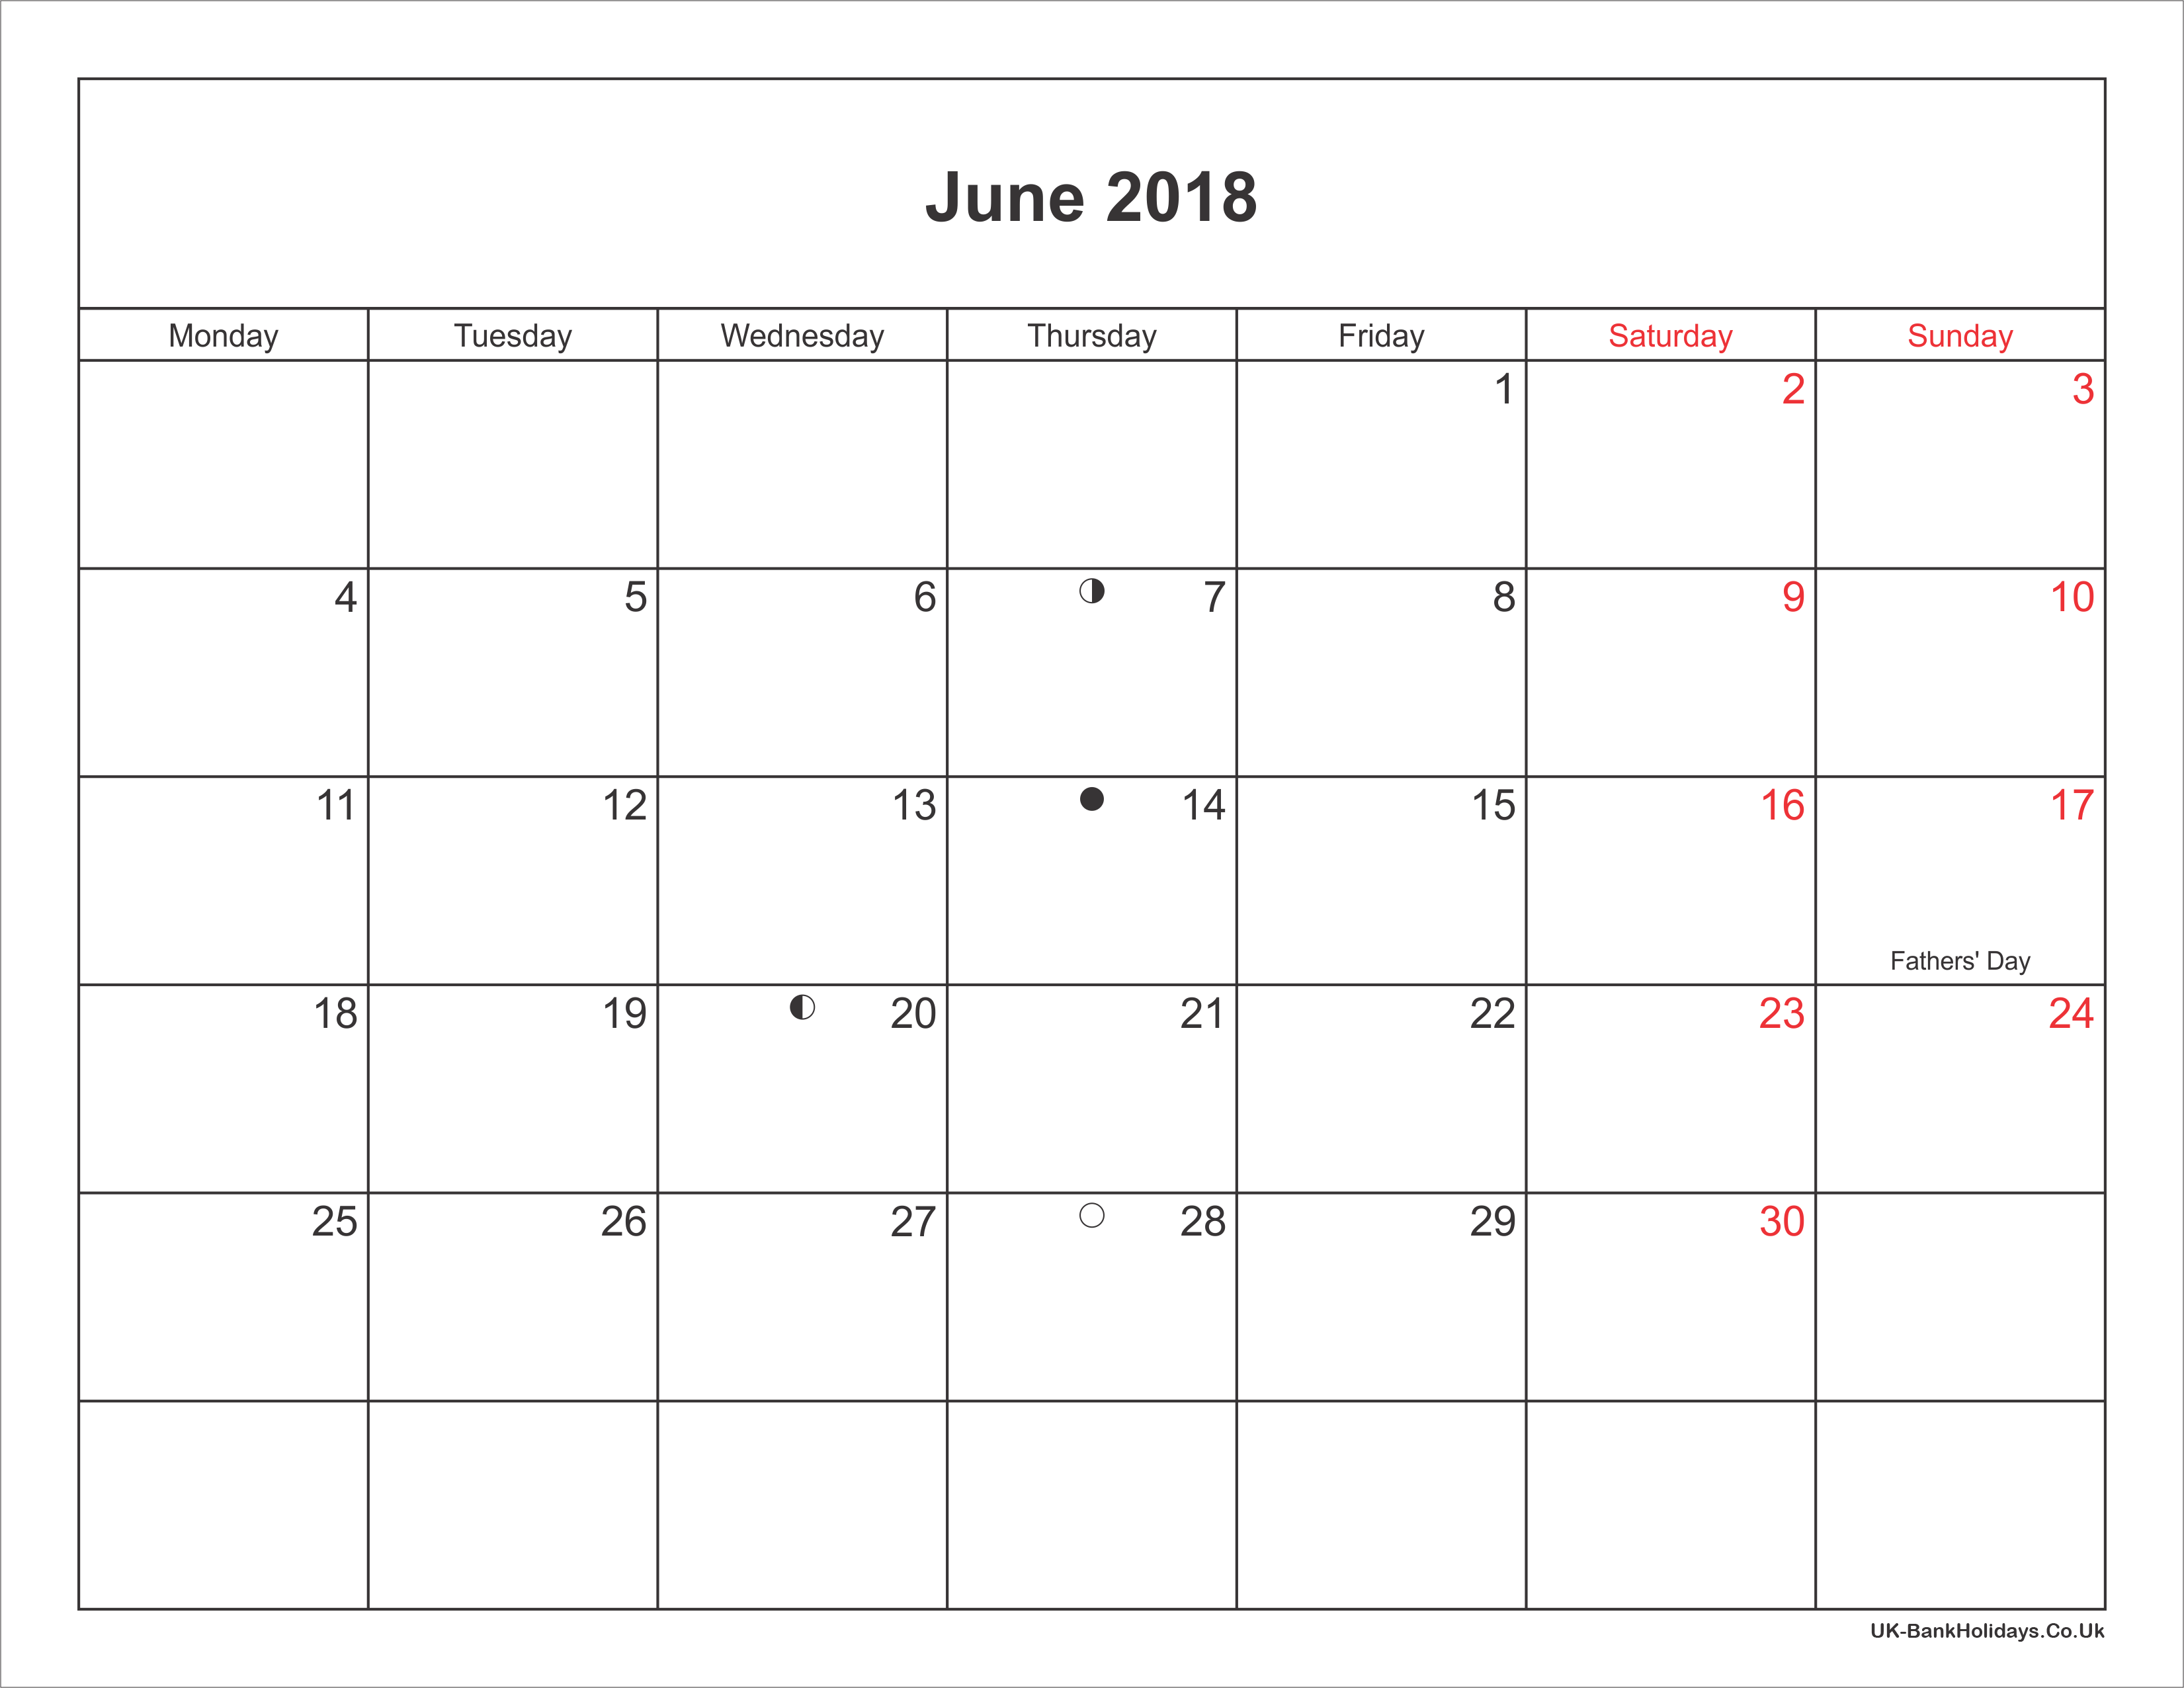 June Calendar Uk : June calendar printable with bank holidays uk